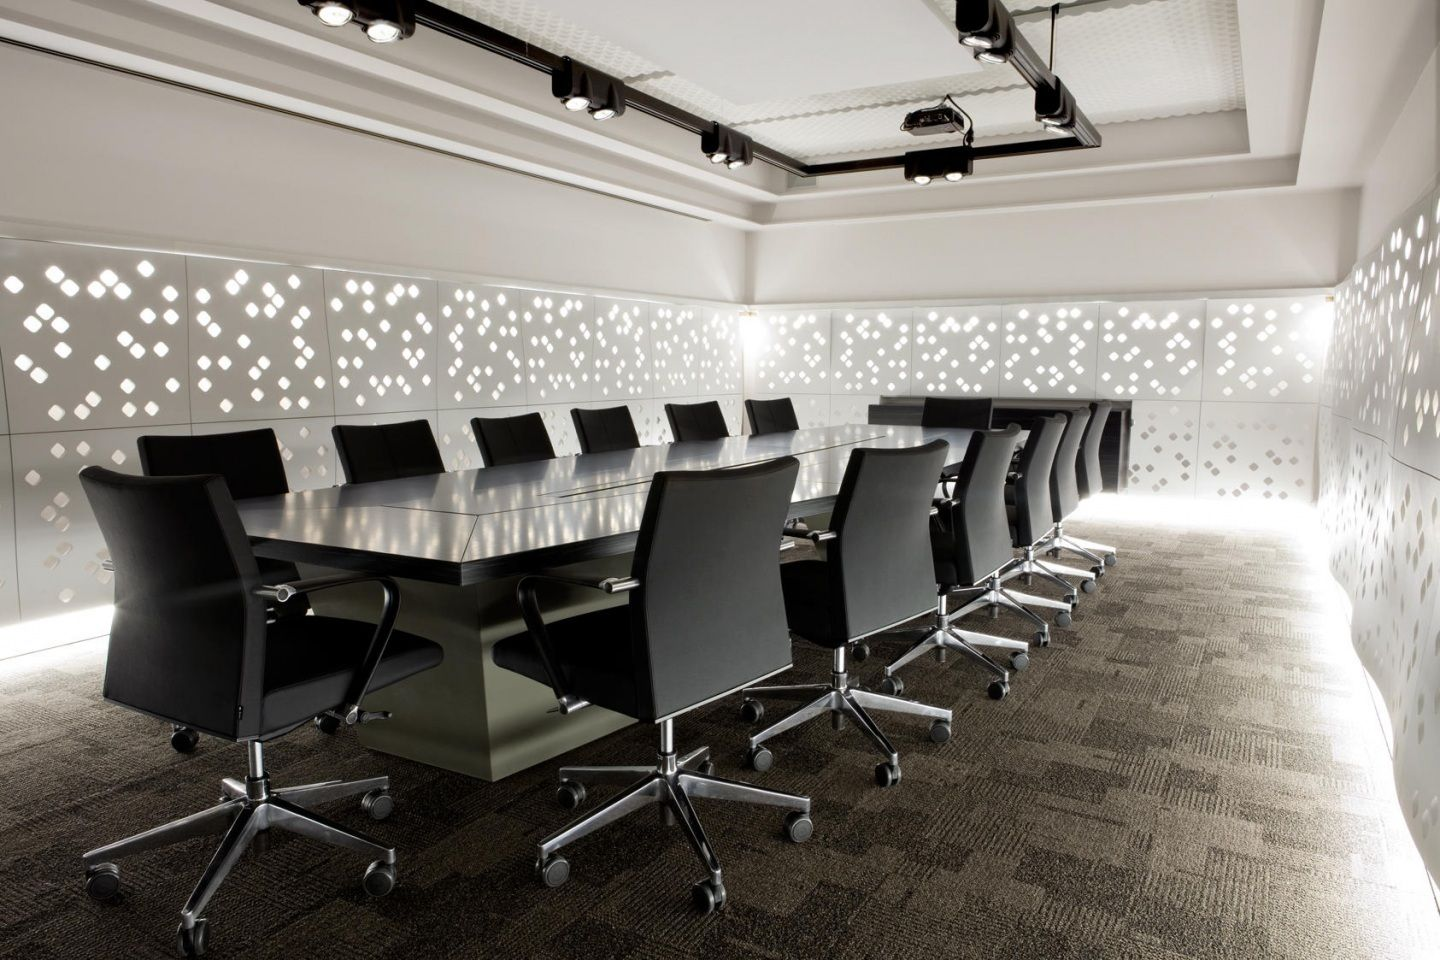 Interior amazing office meeting room design with contemporary large conference table in black - Design office room ...